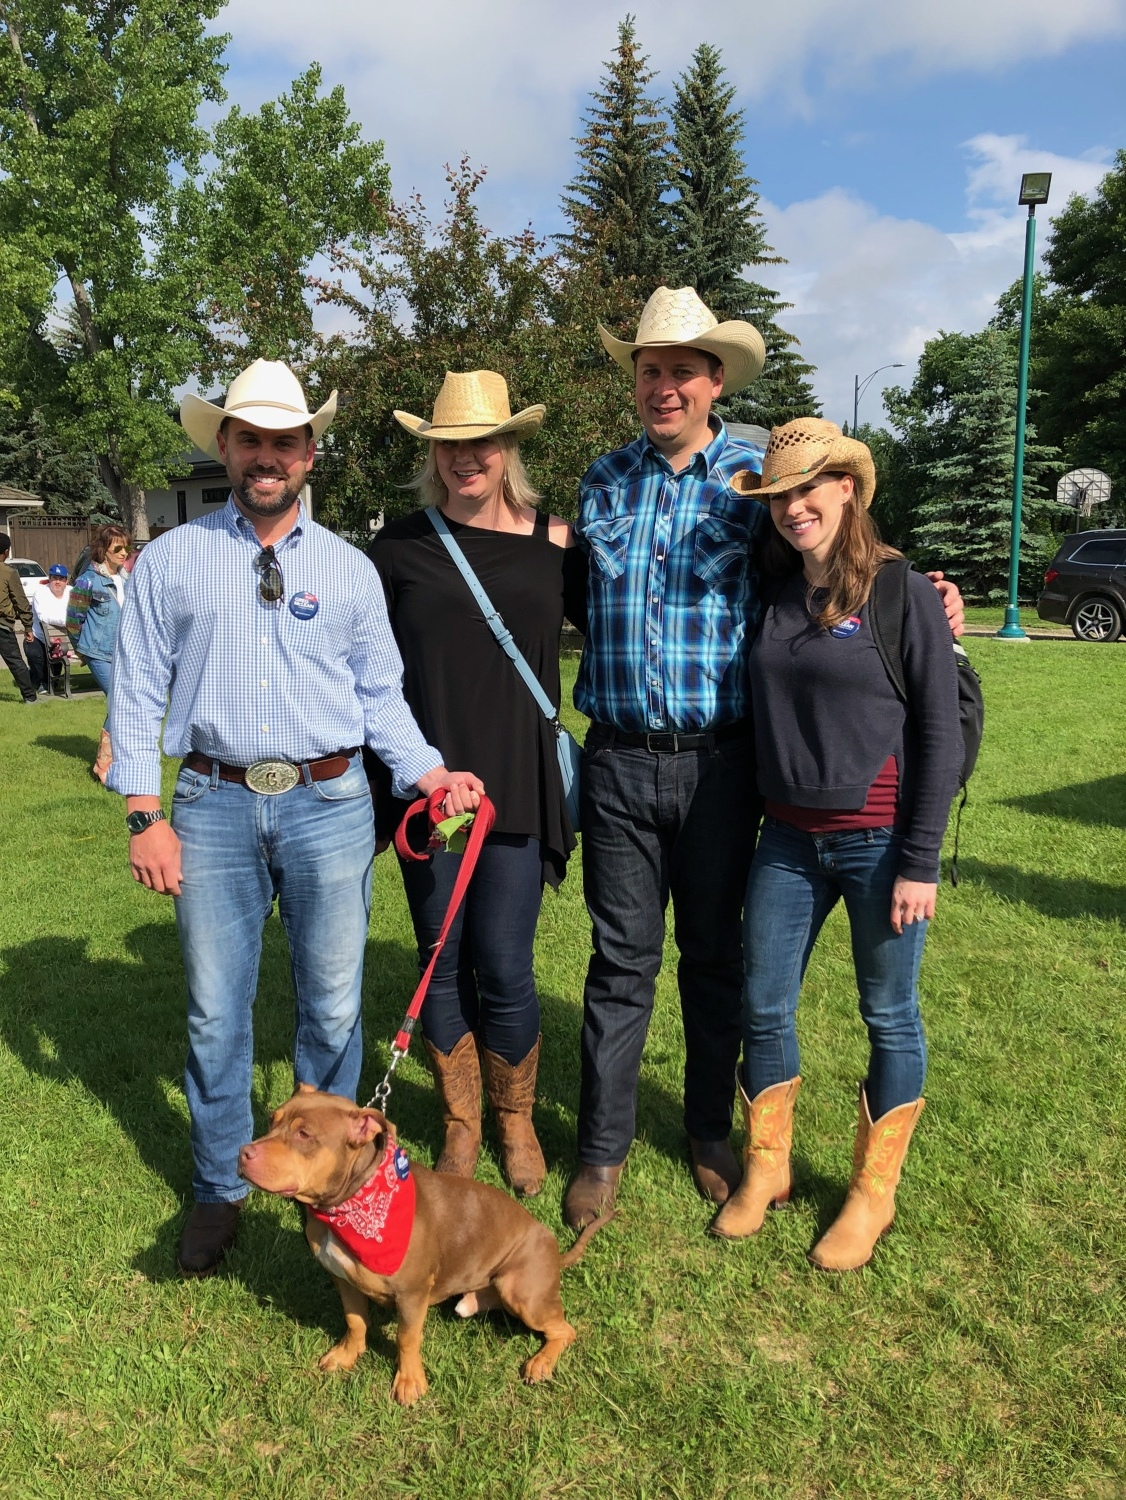 After the Chinook Mall, Andrew Scheer accompanied me to the neighbourhood Stampede event in Mayfair Bel-Aire.